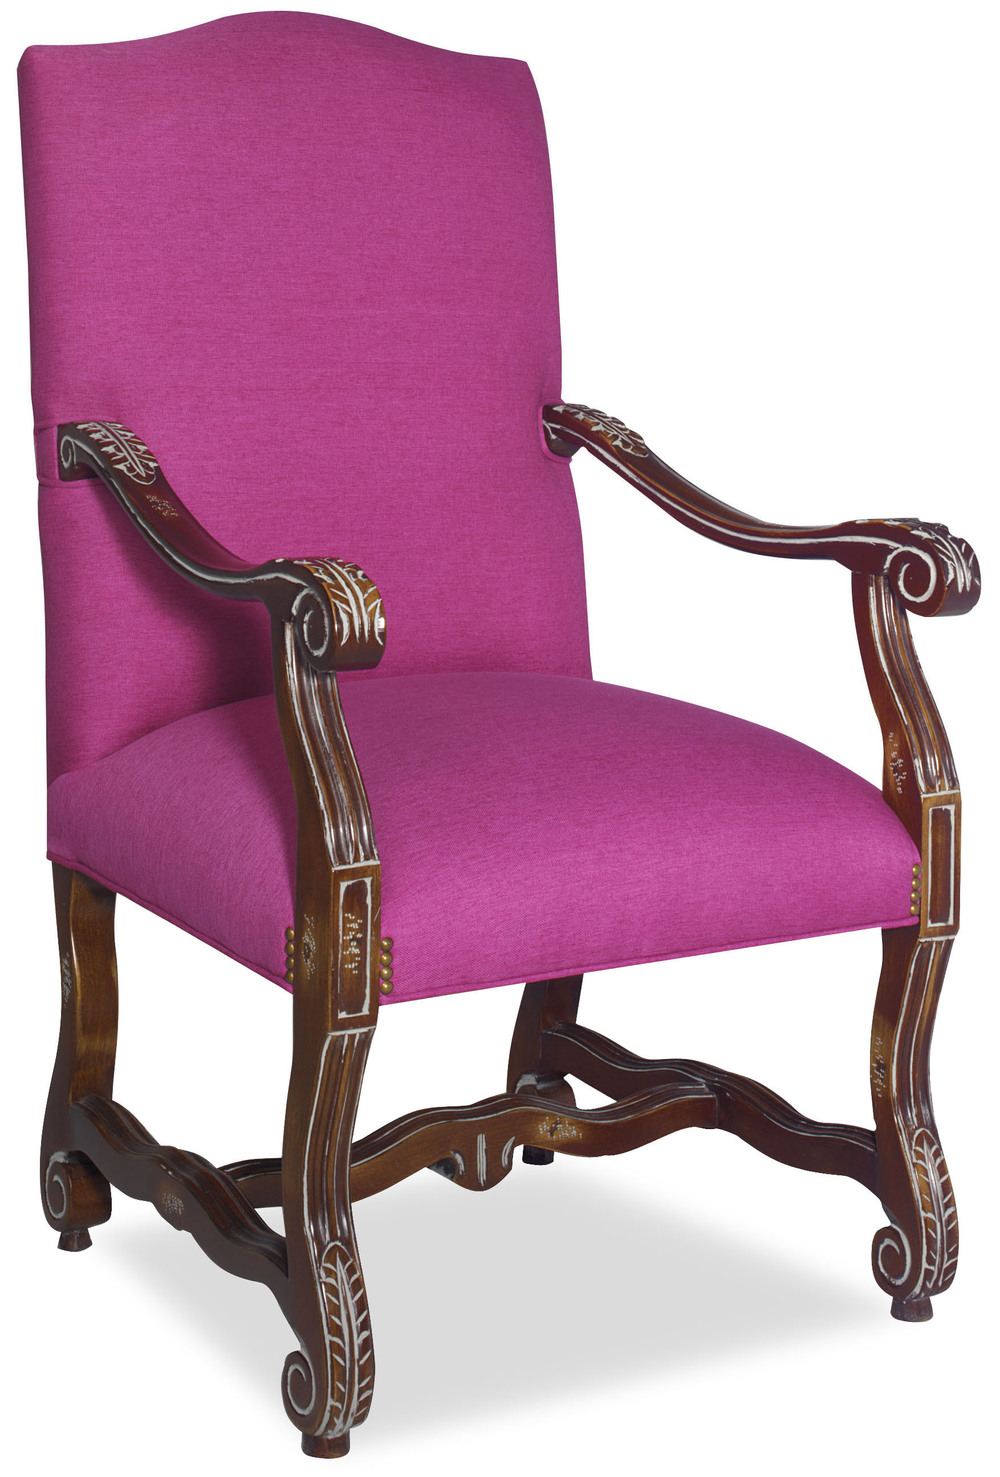 Parker Southern - Adrian Chair